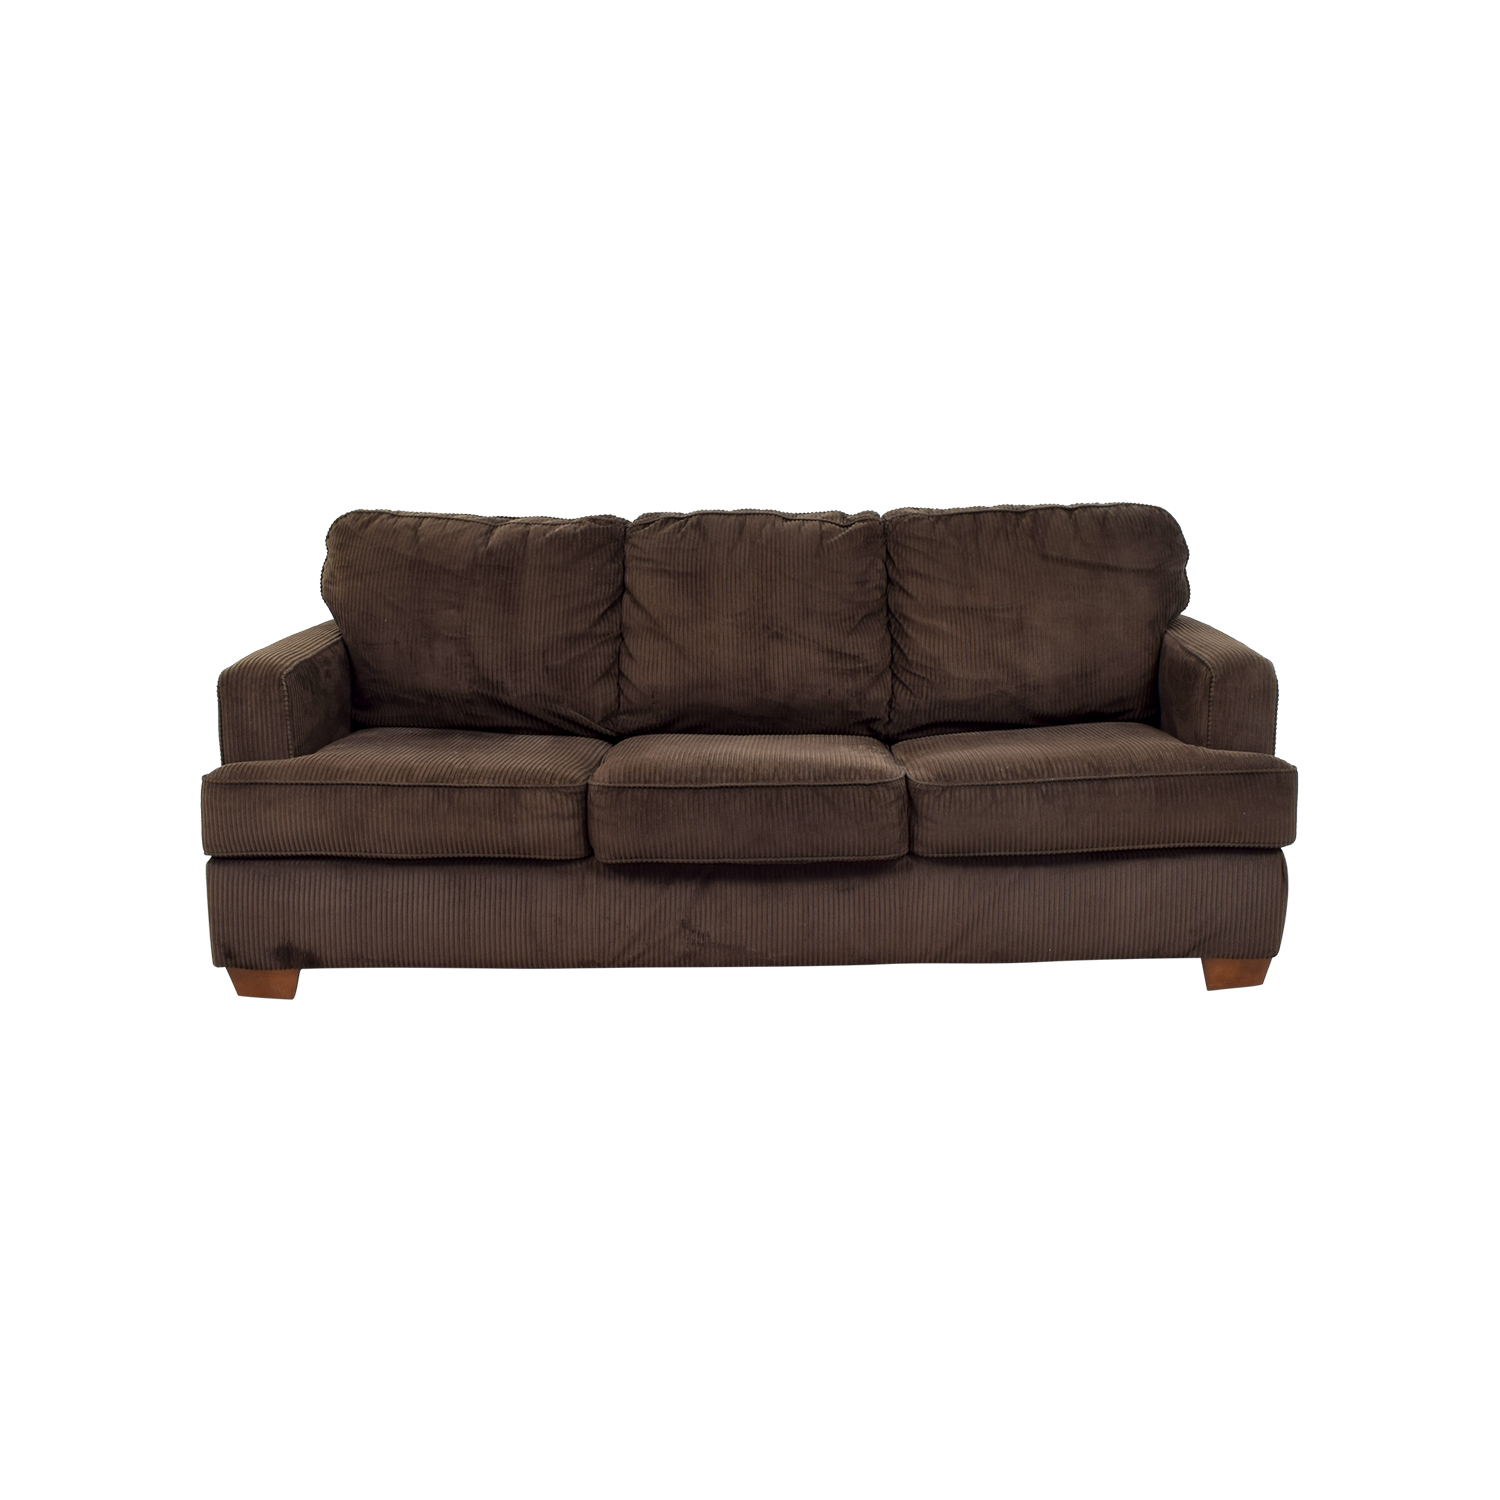 buy Atmore Chocolate Corduroy Three-Cushion Sofa Atmore Classic Sofas